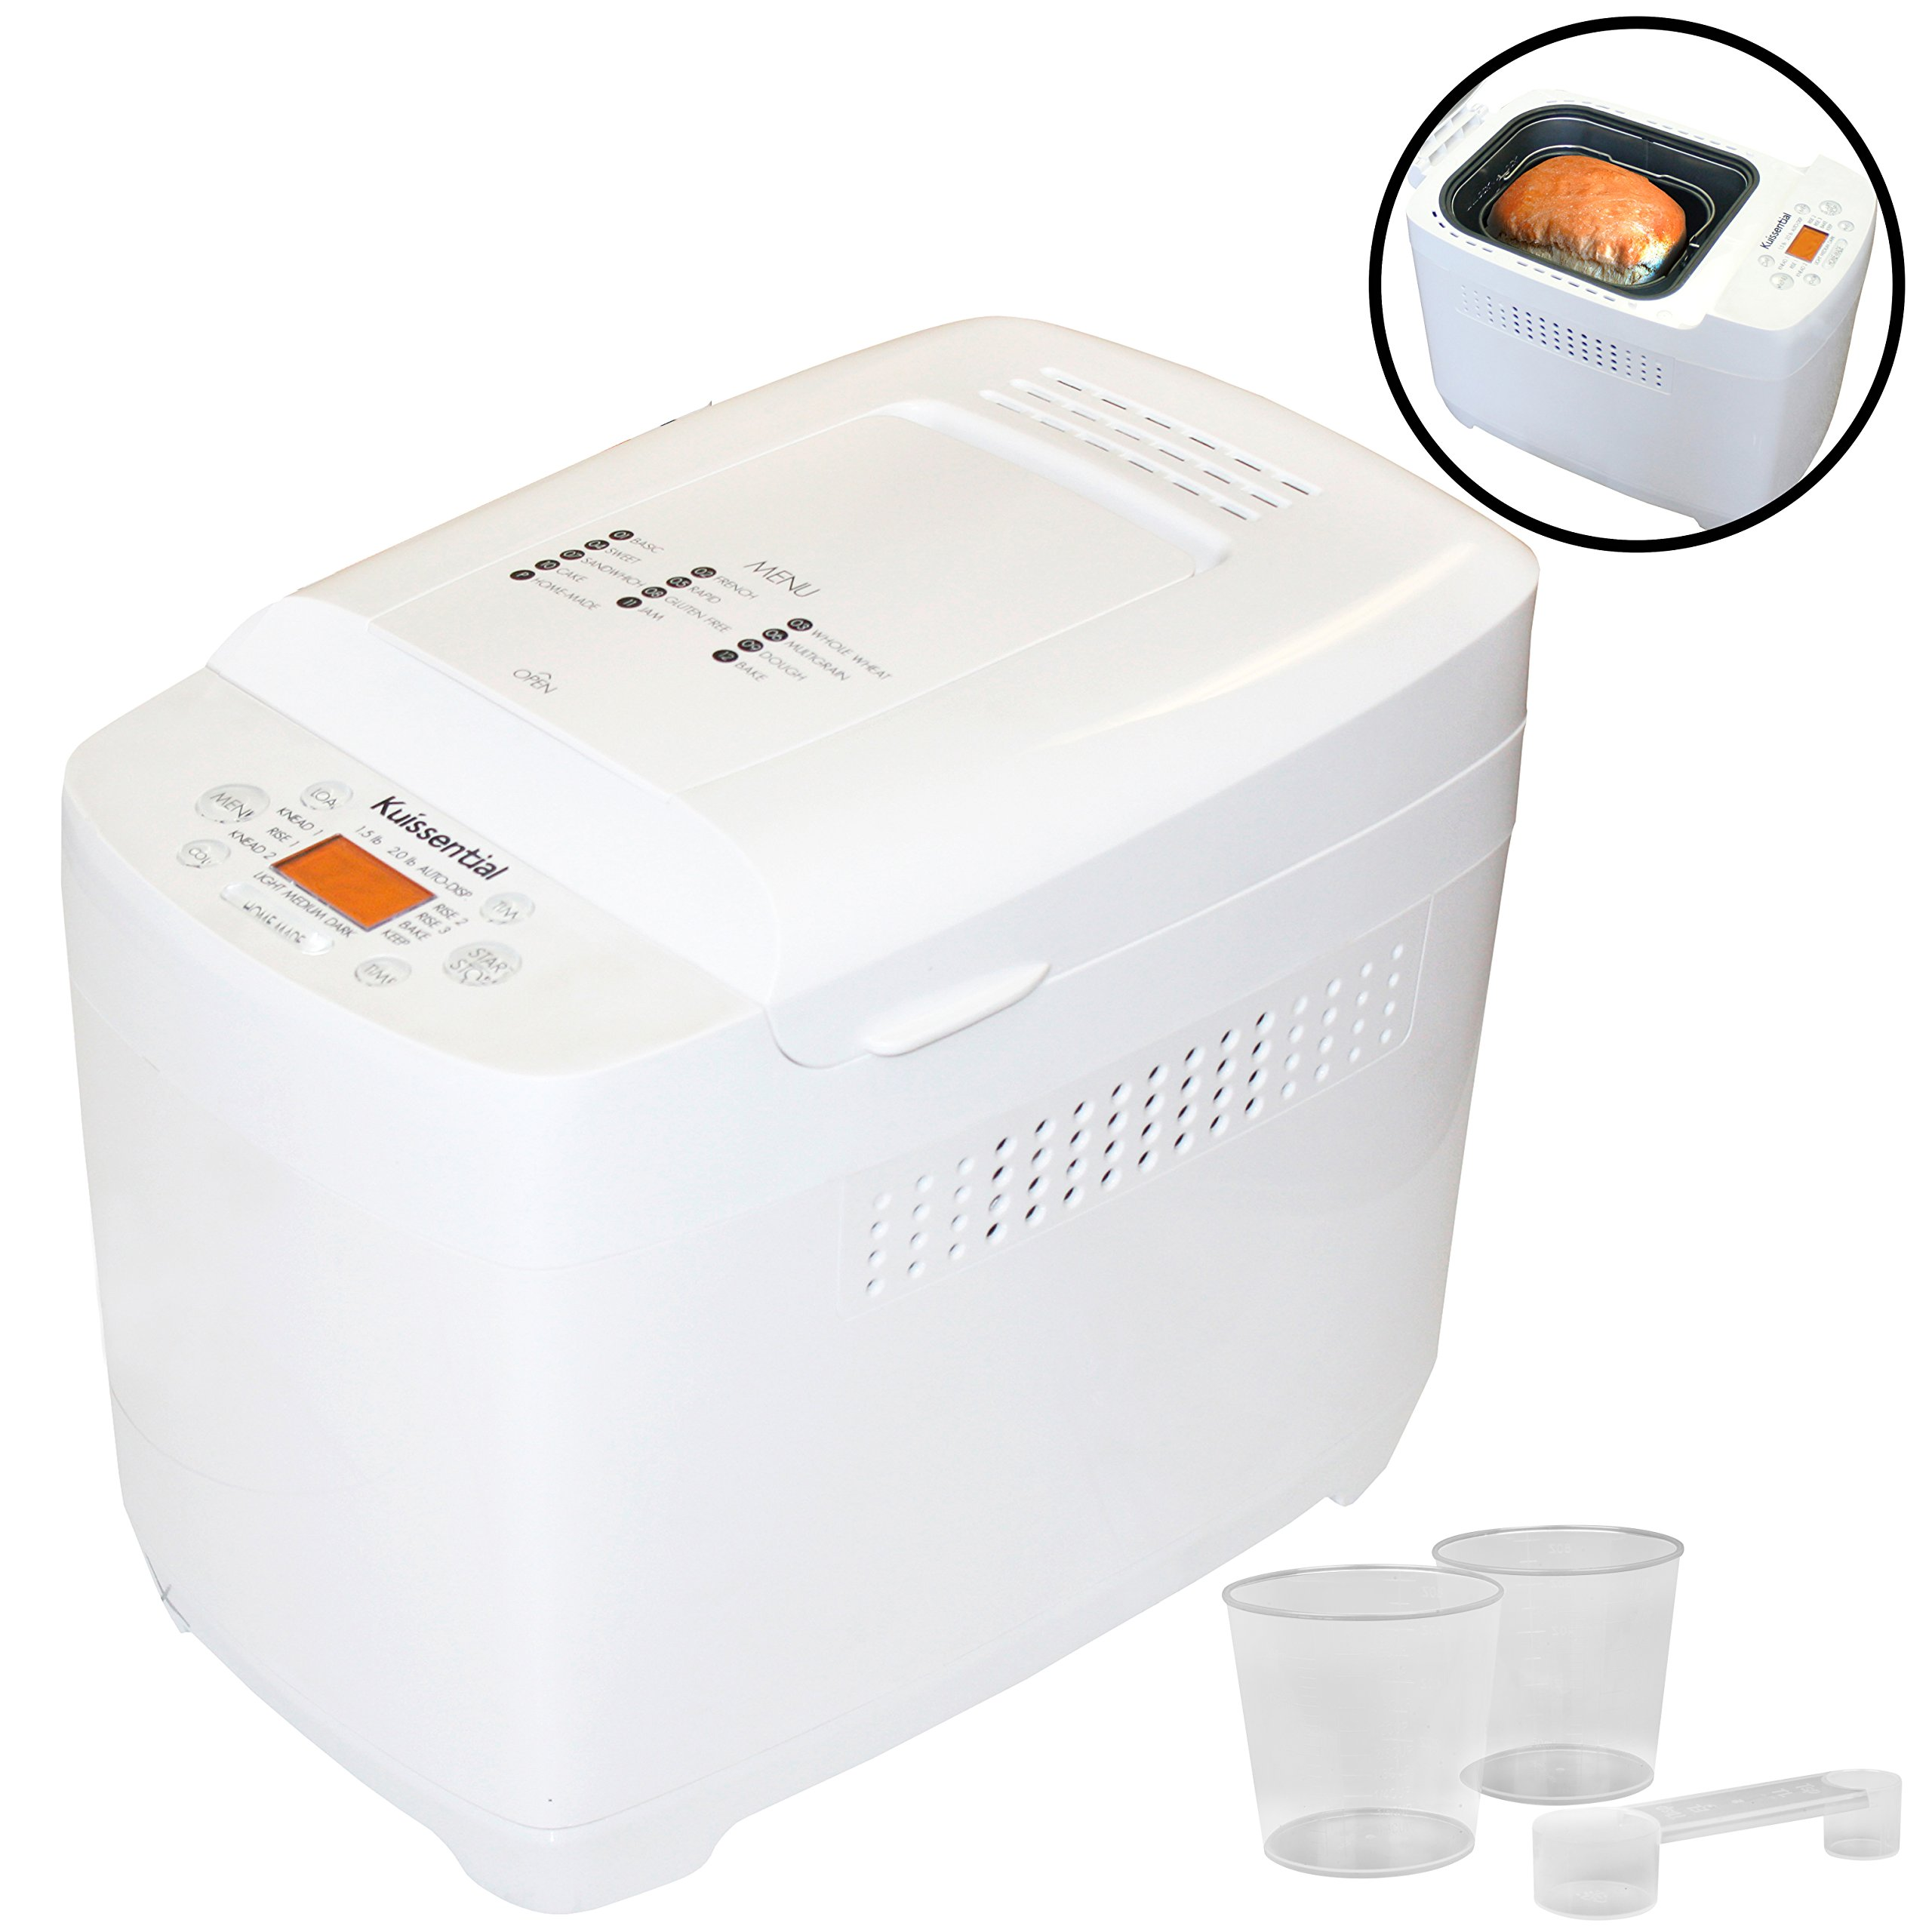 Kuissential 2-Pound Programmable Bread Machine w/Auto Fruit and Nut Dispenser, 13 Settings and 13-Hour Delay Timer